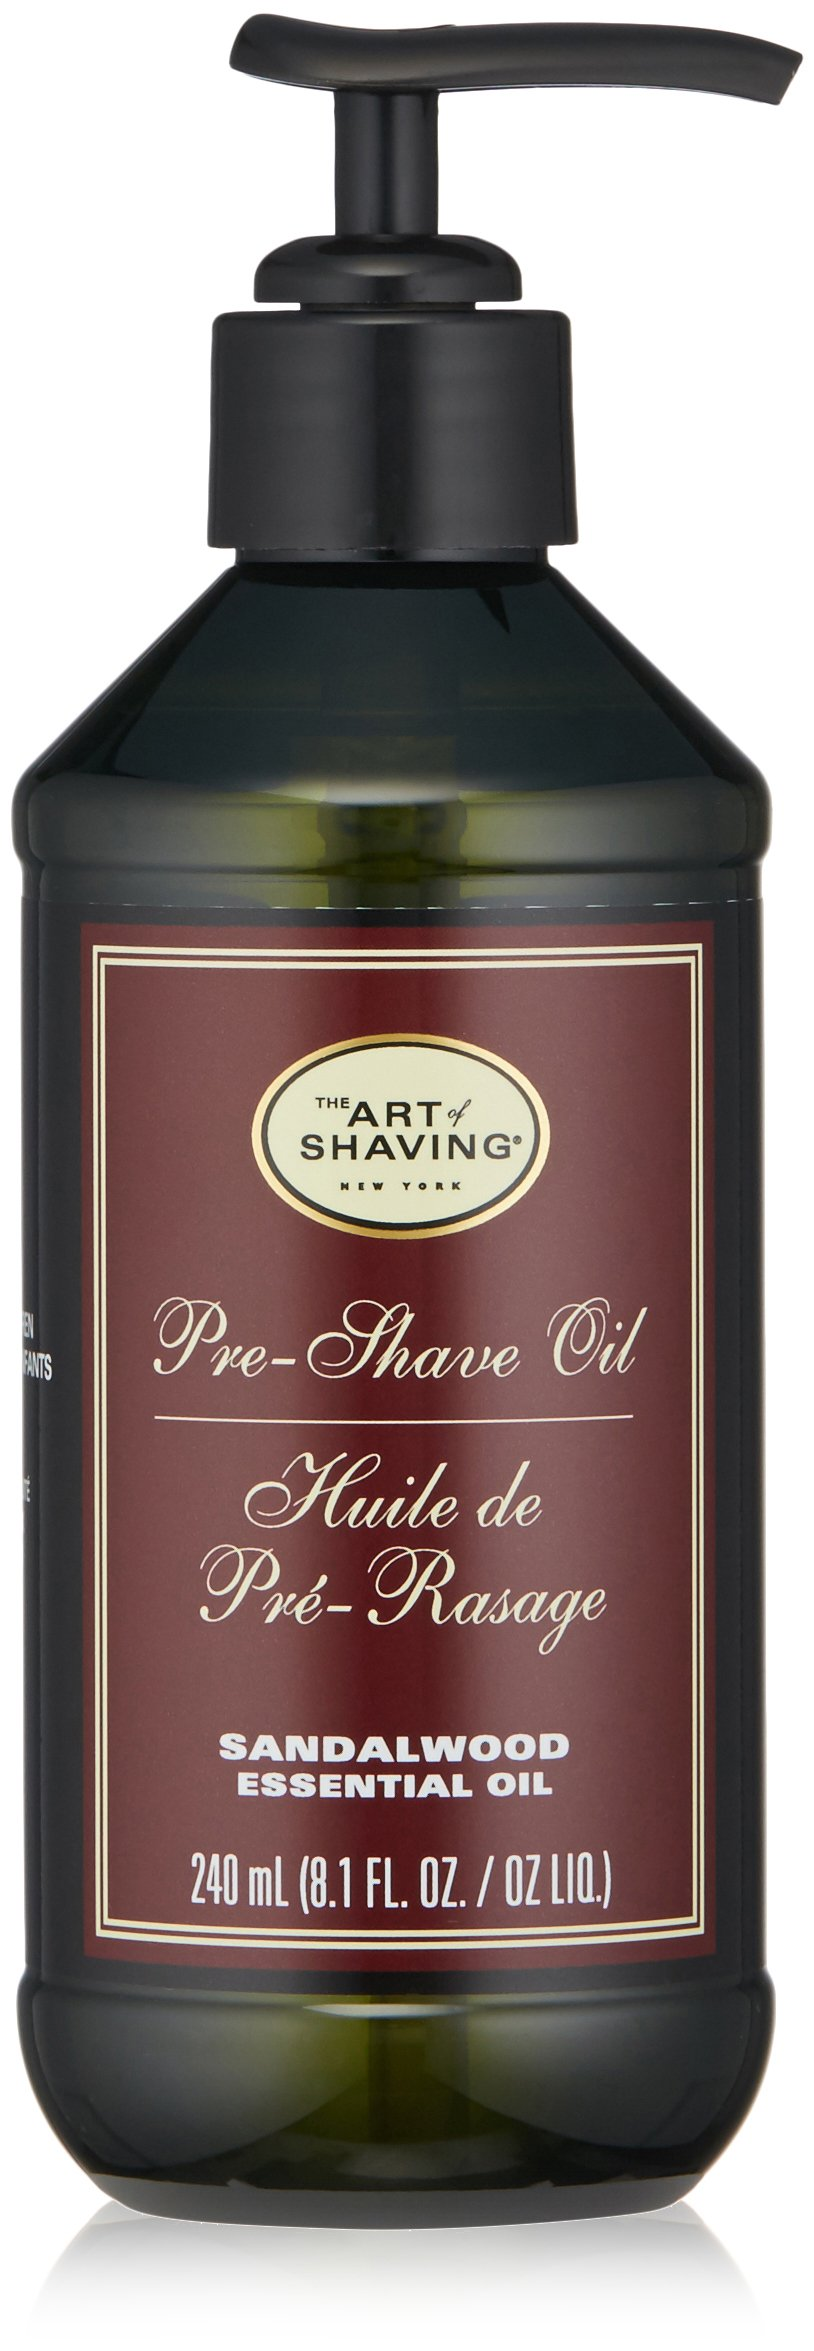 The Art of Shaving Pre Shave Oil, Sandalwood, 8 Ounce by The Art of Shaving